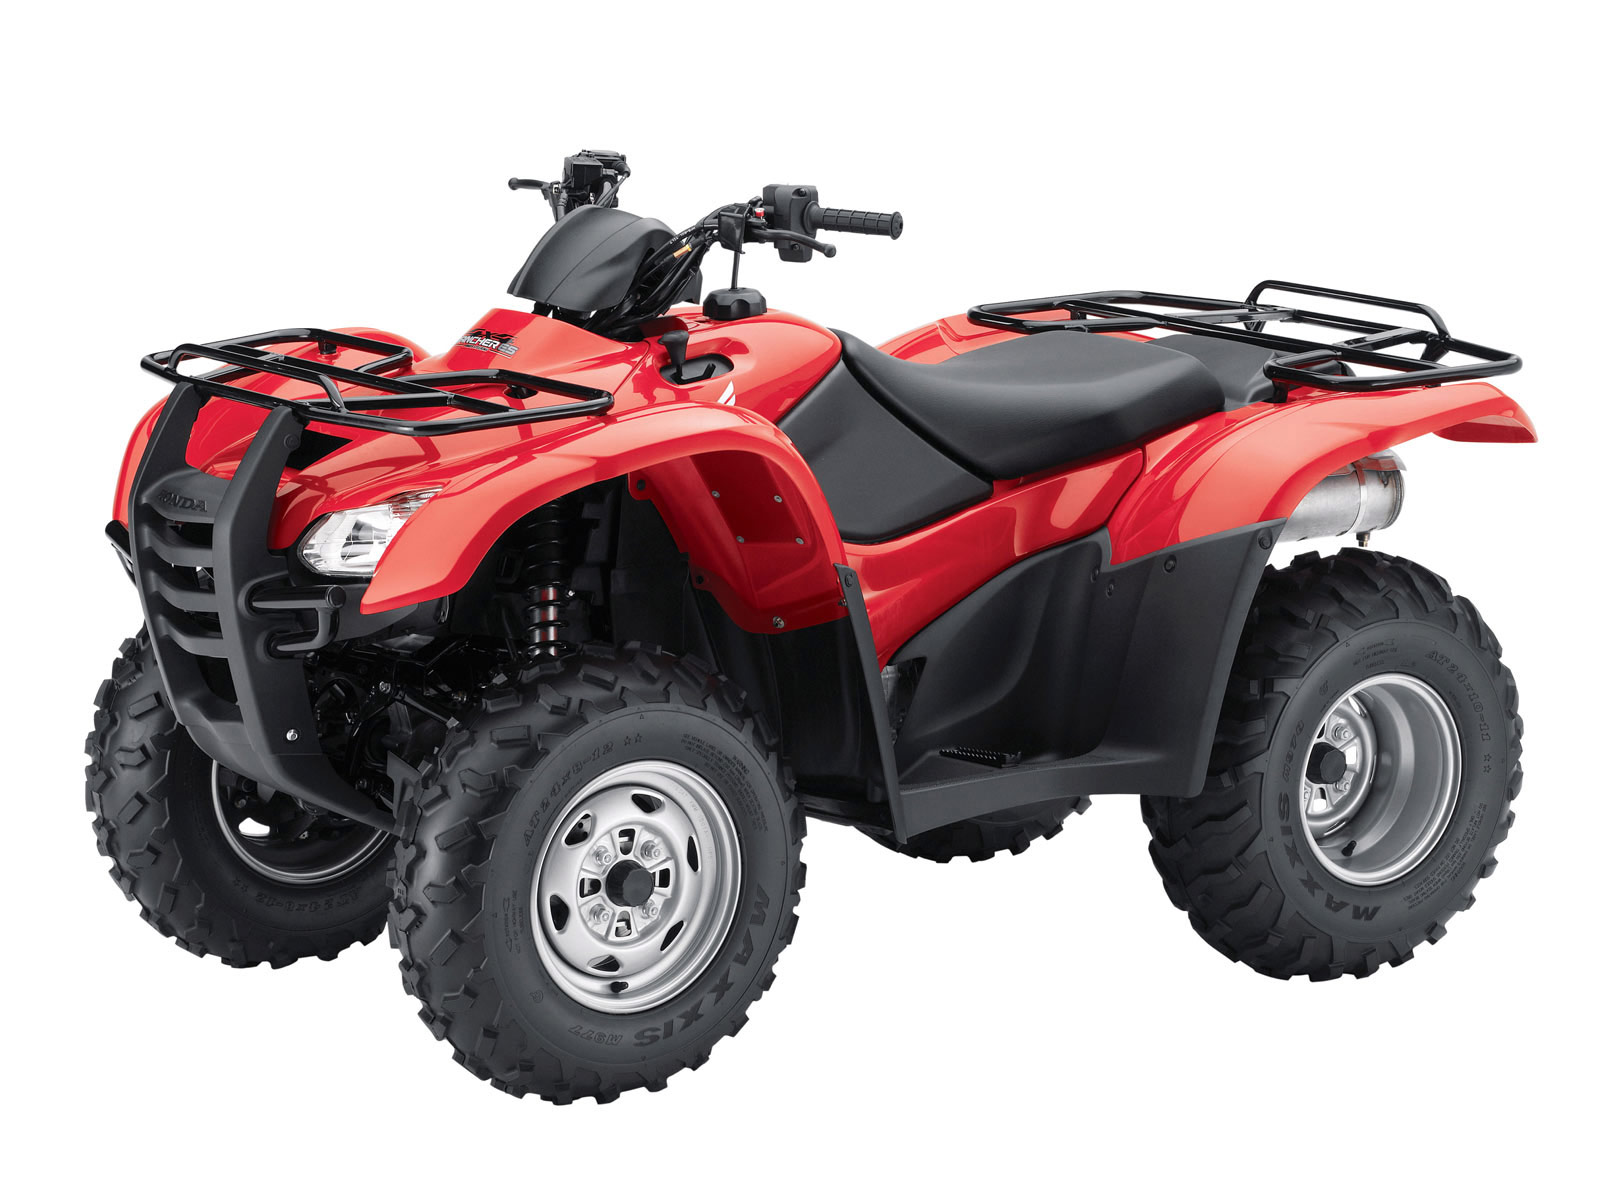 2009 Honda Fourtrax Rancher 4x4 Es Atv Wallpapers